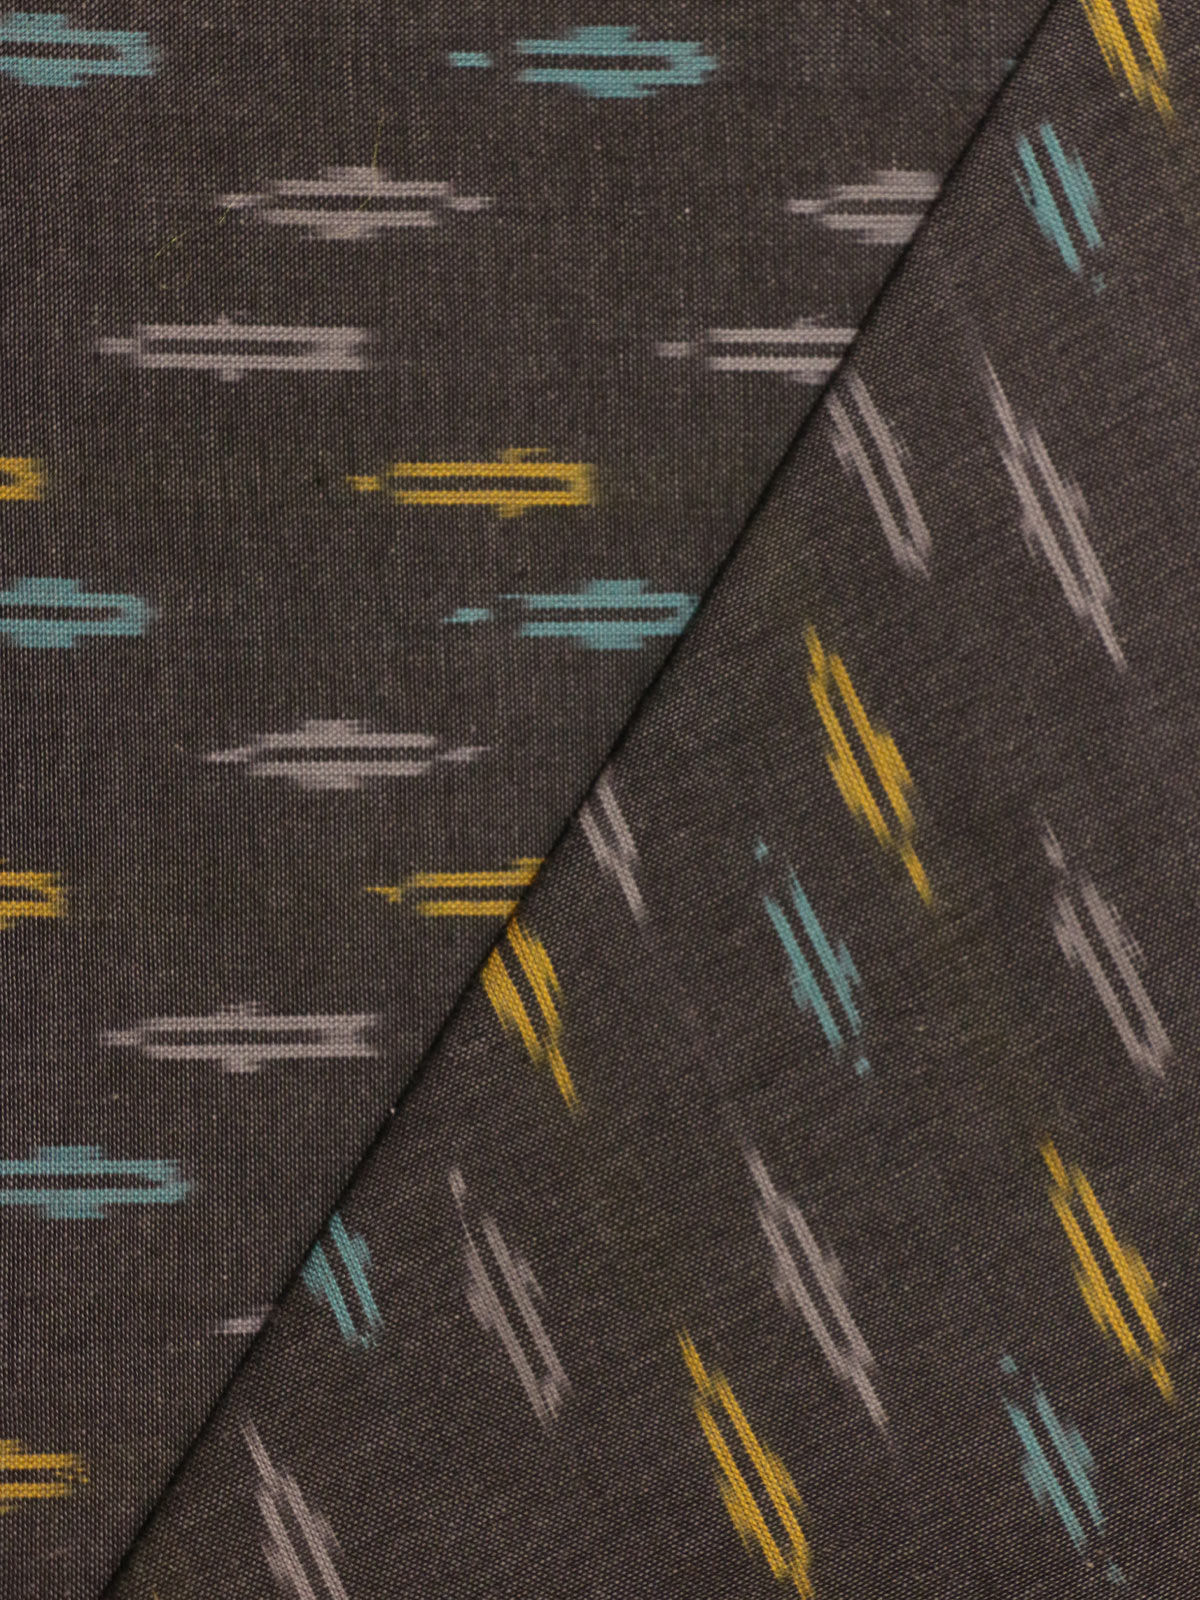 Black, teal and Mustard color ikat handloom cotton fabric